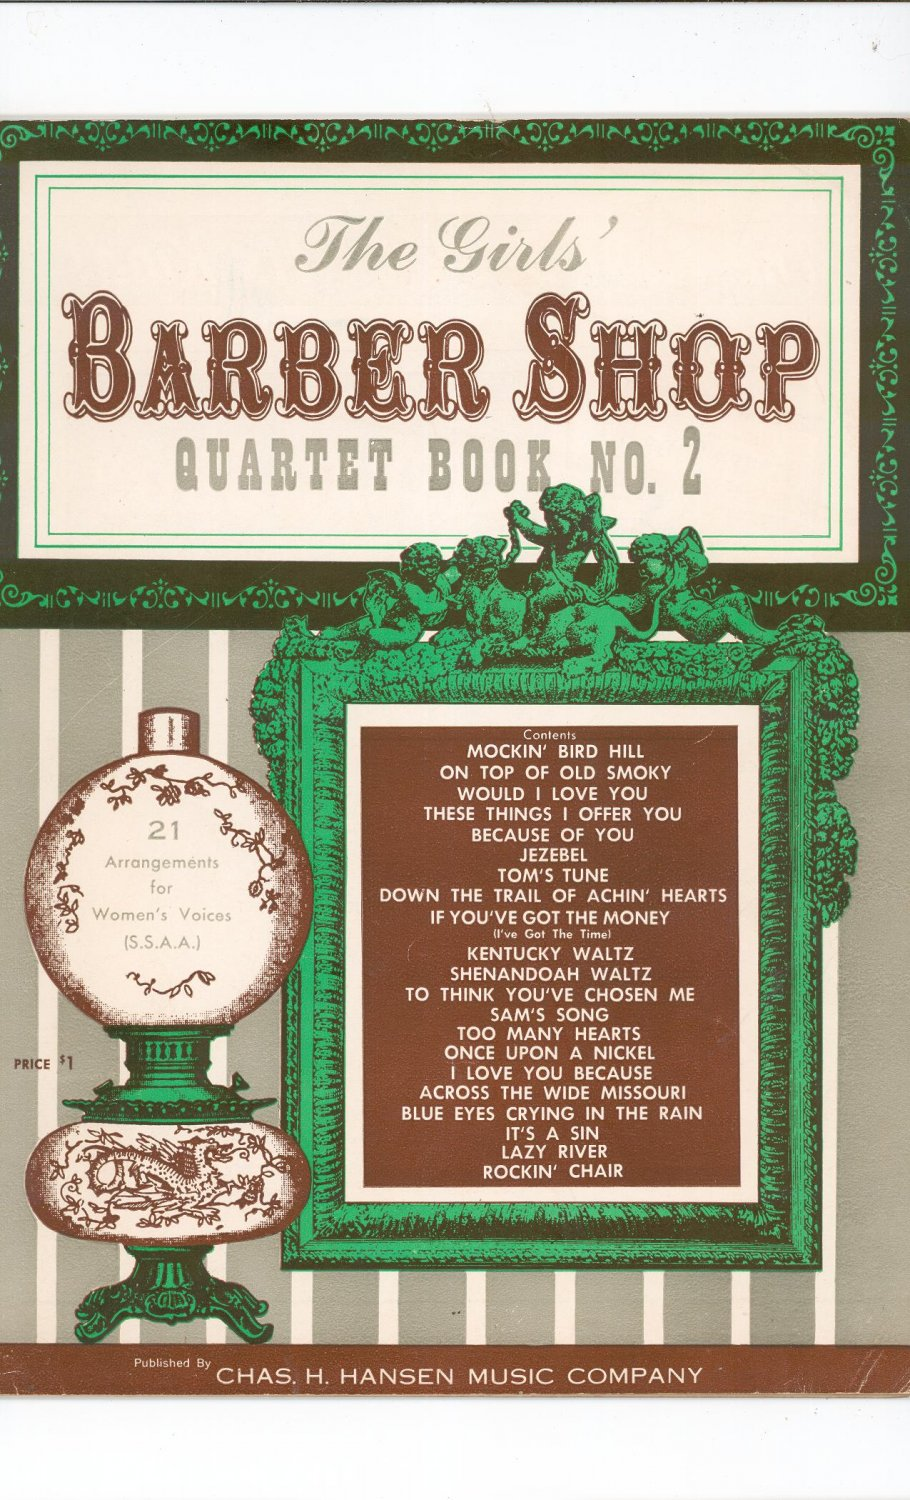 The Girls Barber Shop Quartet Book No. 2 Vintage Chas H. Hansen Music Company